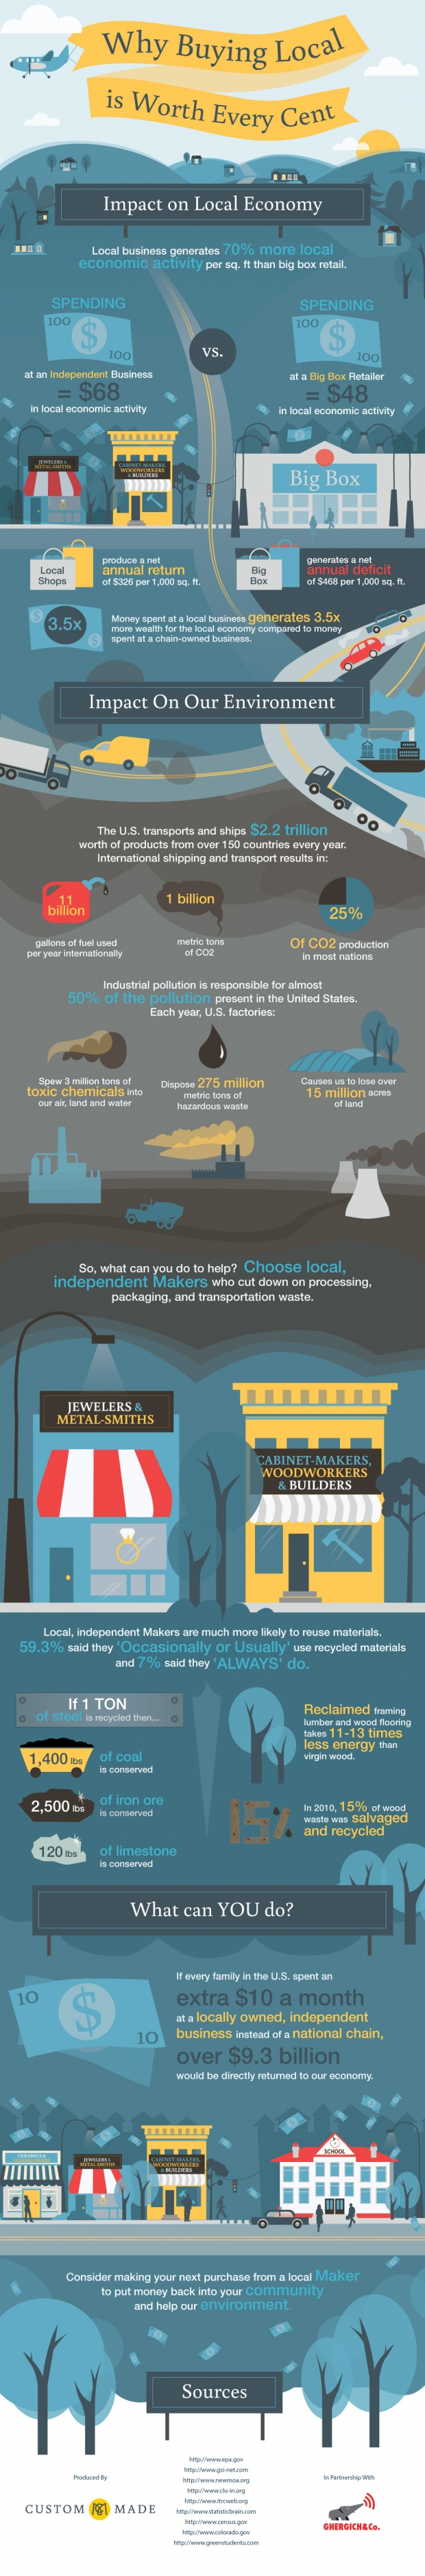 Buying_Local_Infographic